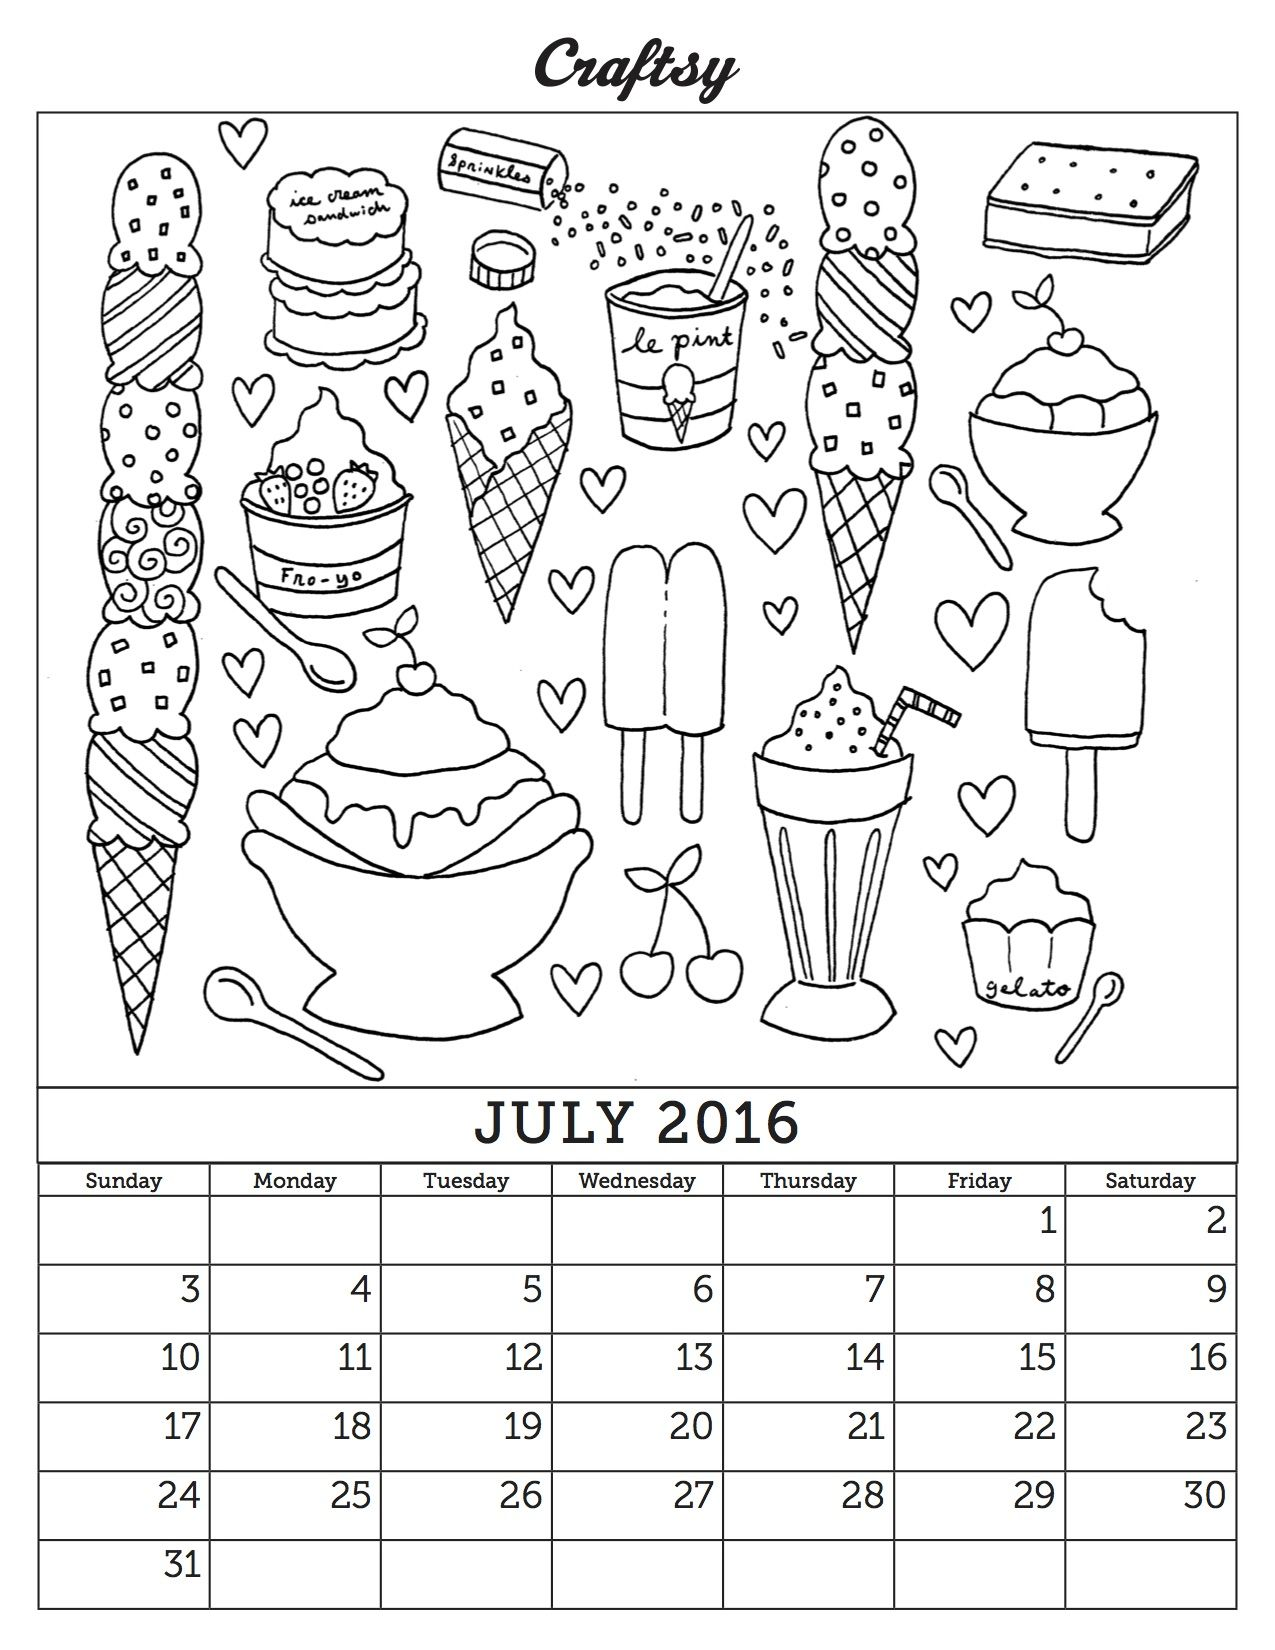 July 2016 Free Coloring Page Calendar Free Coloring Pages Mom